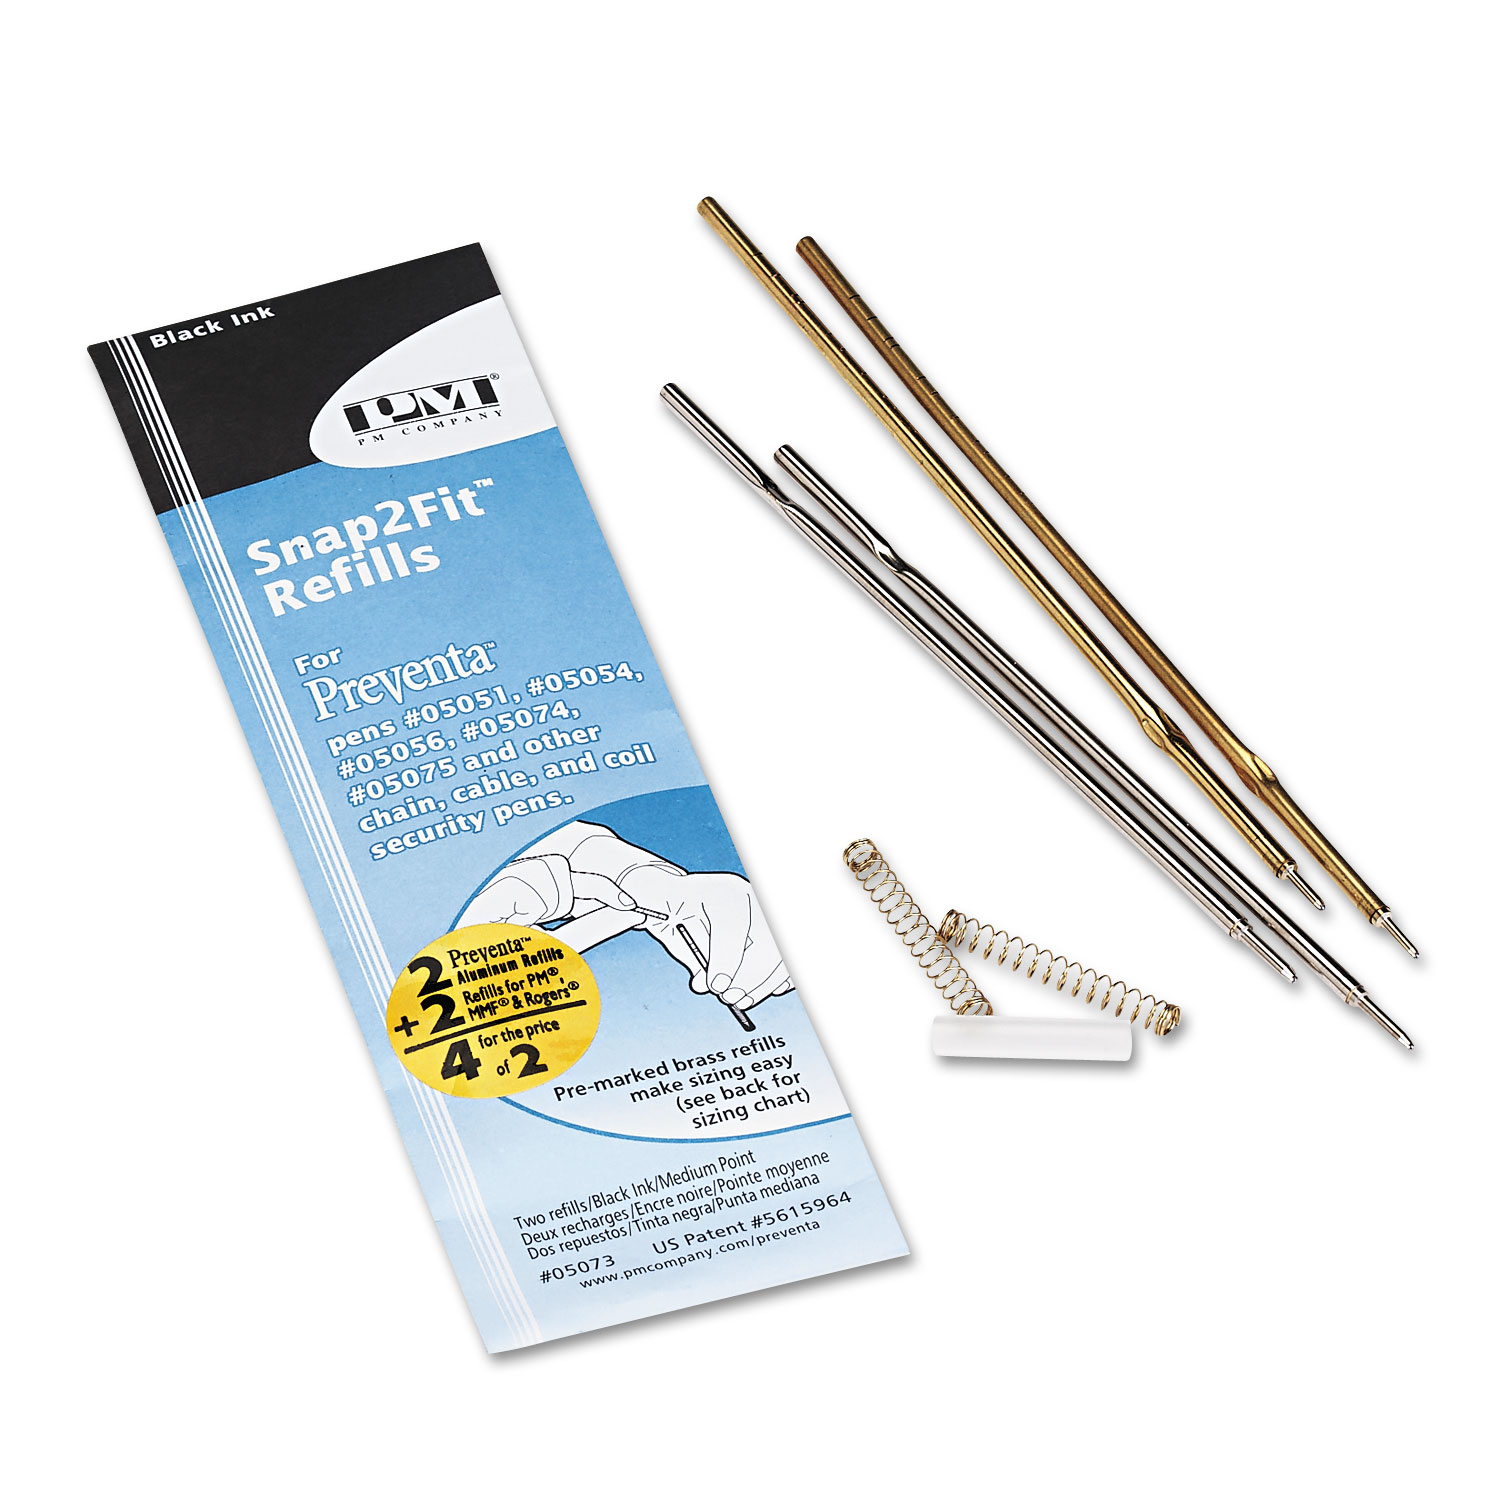 Refill for Preventa, MMF Kable & Sentry Counter Pens, Medium Pt, Black, 2/Pack